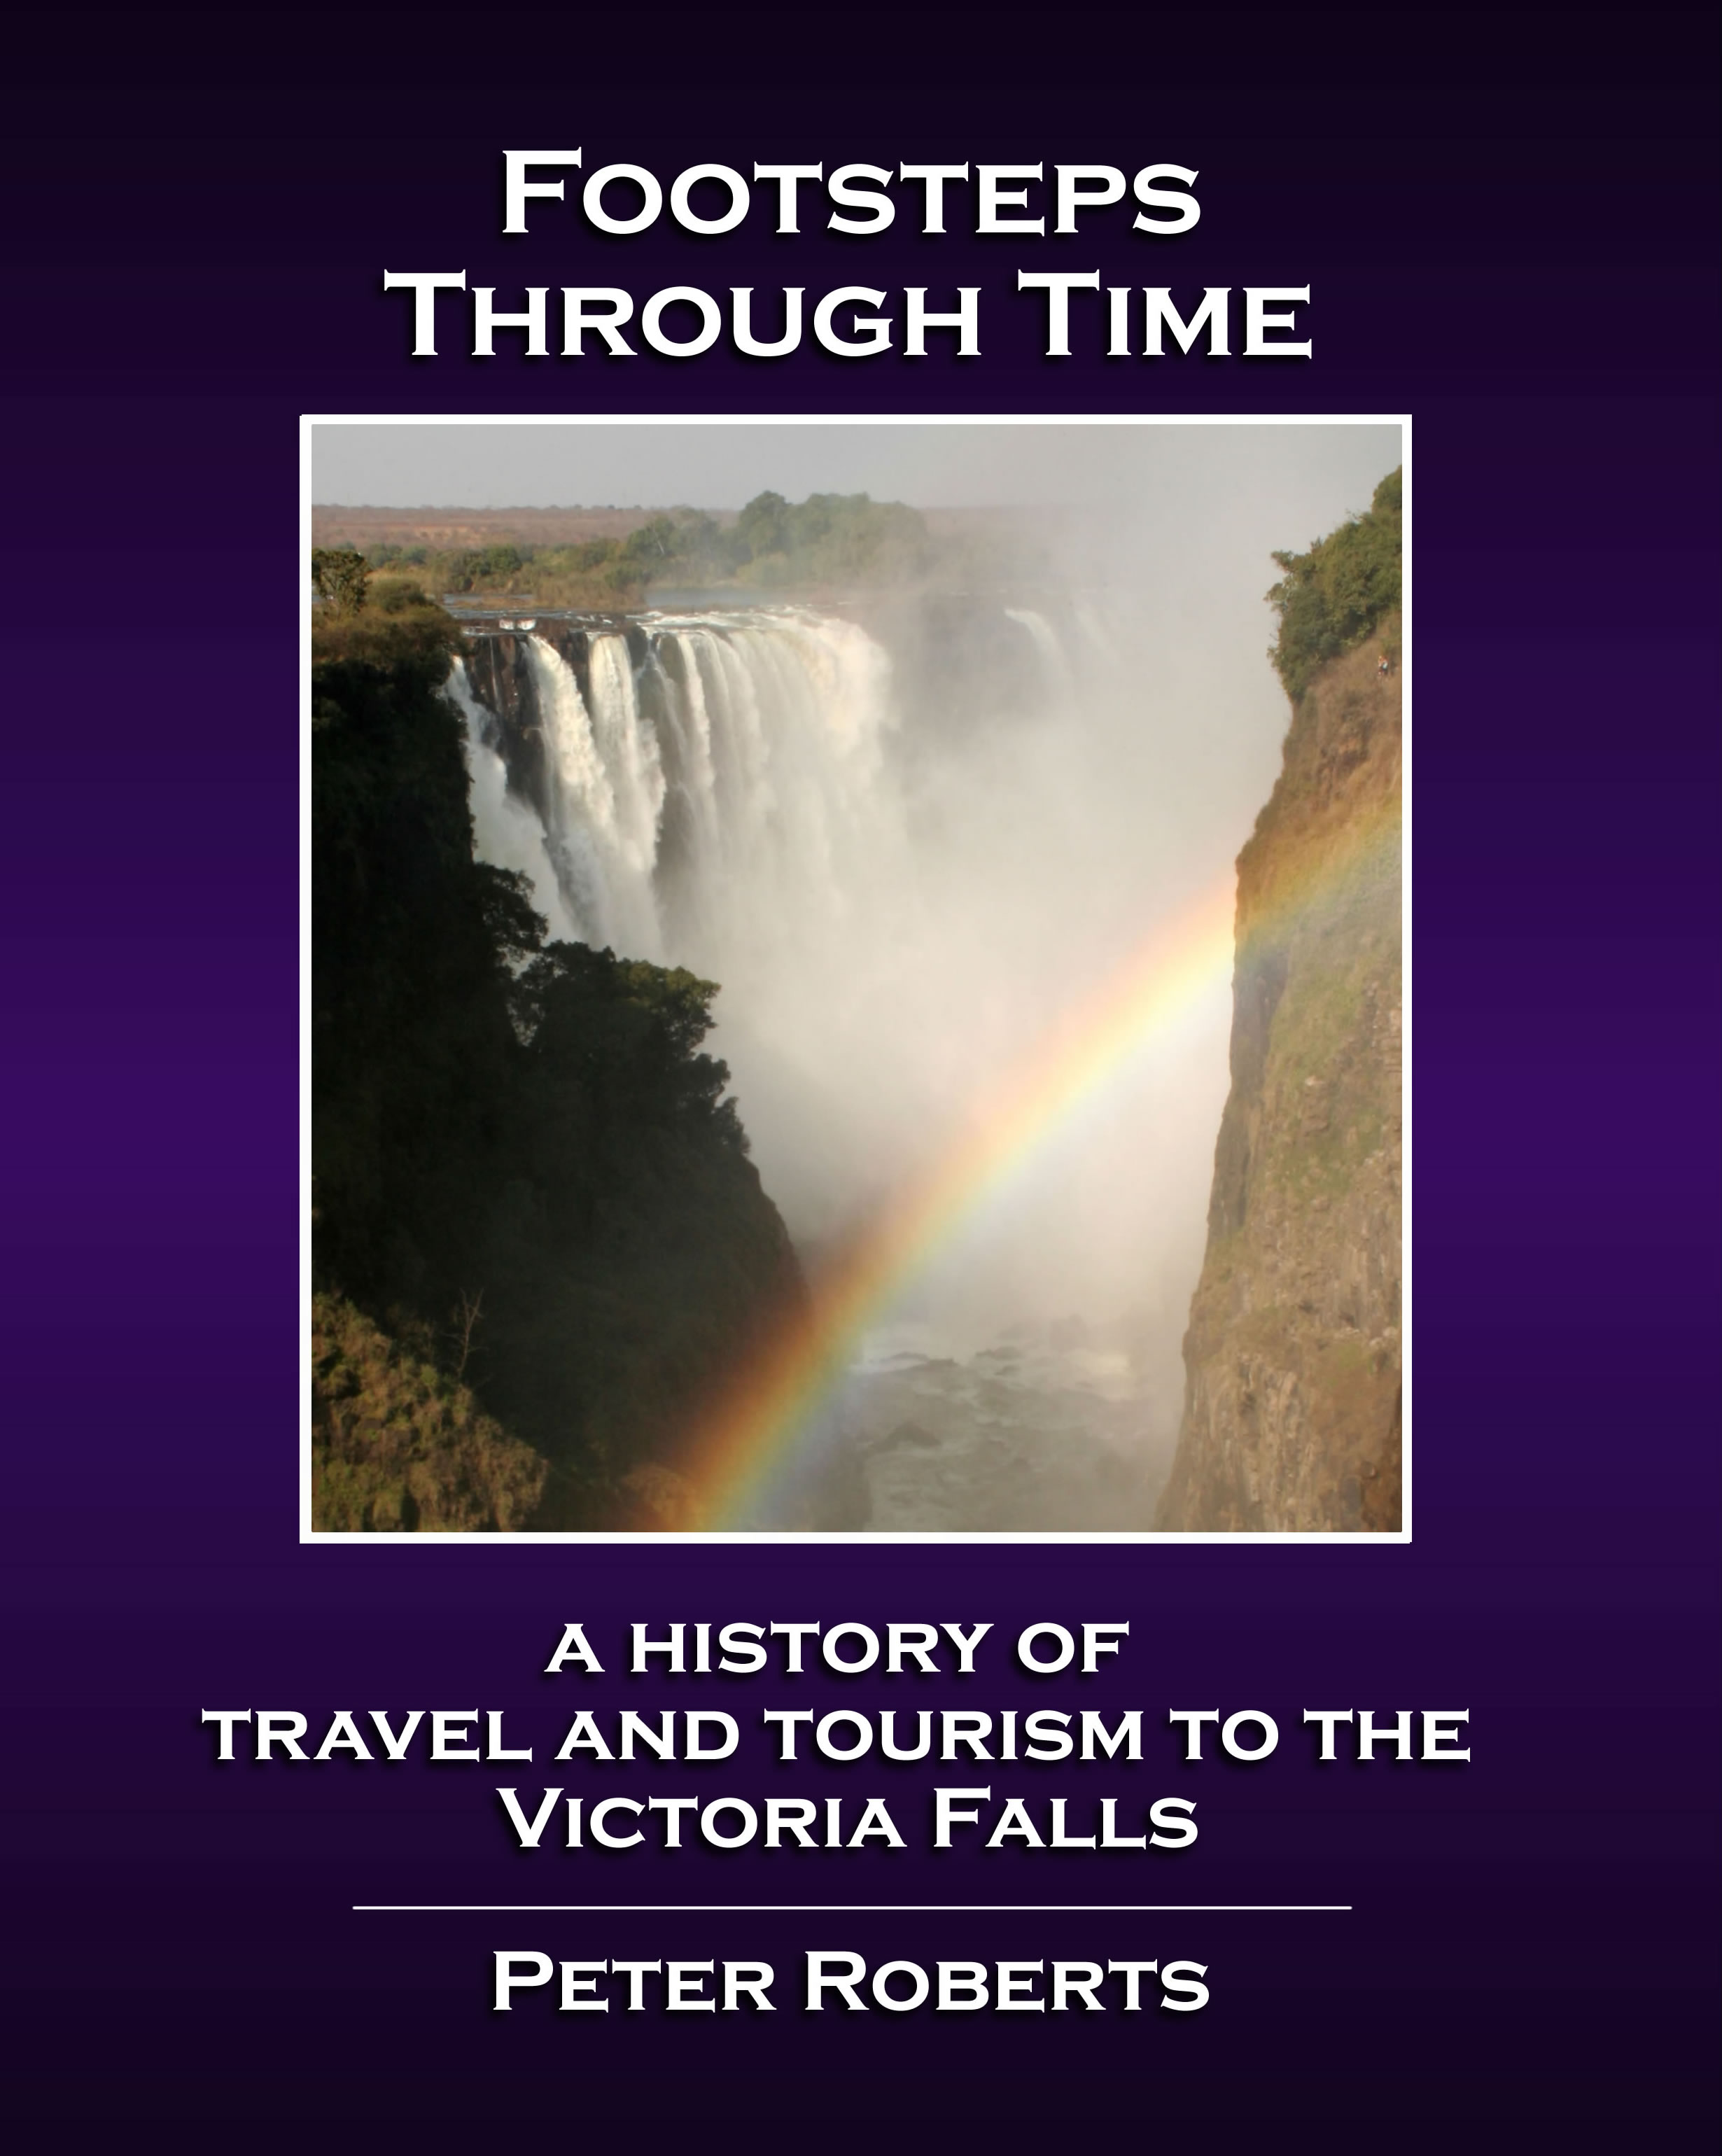 Footsteps Through Time - A History of Travela and Tourism to the Victoria Falls